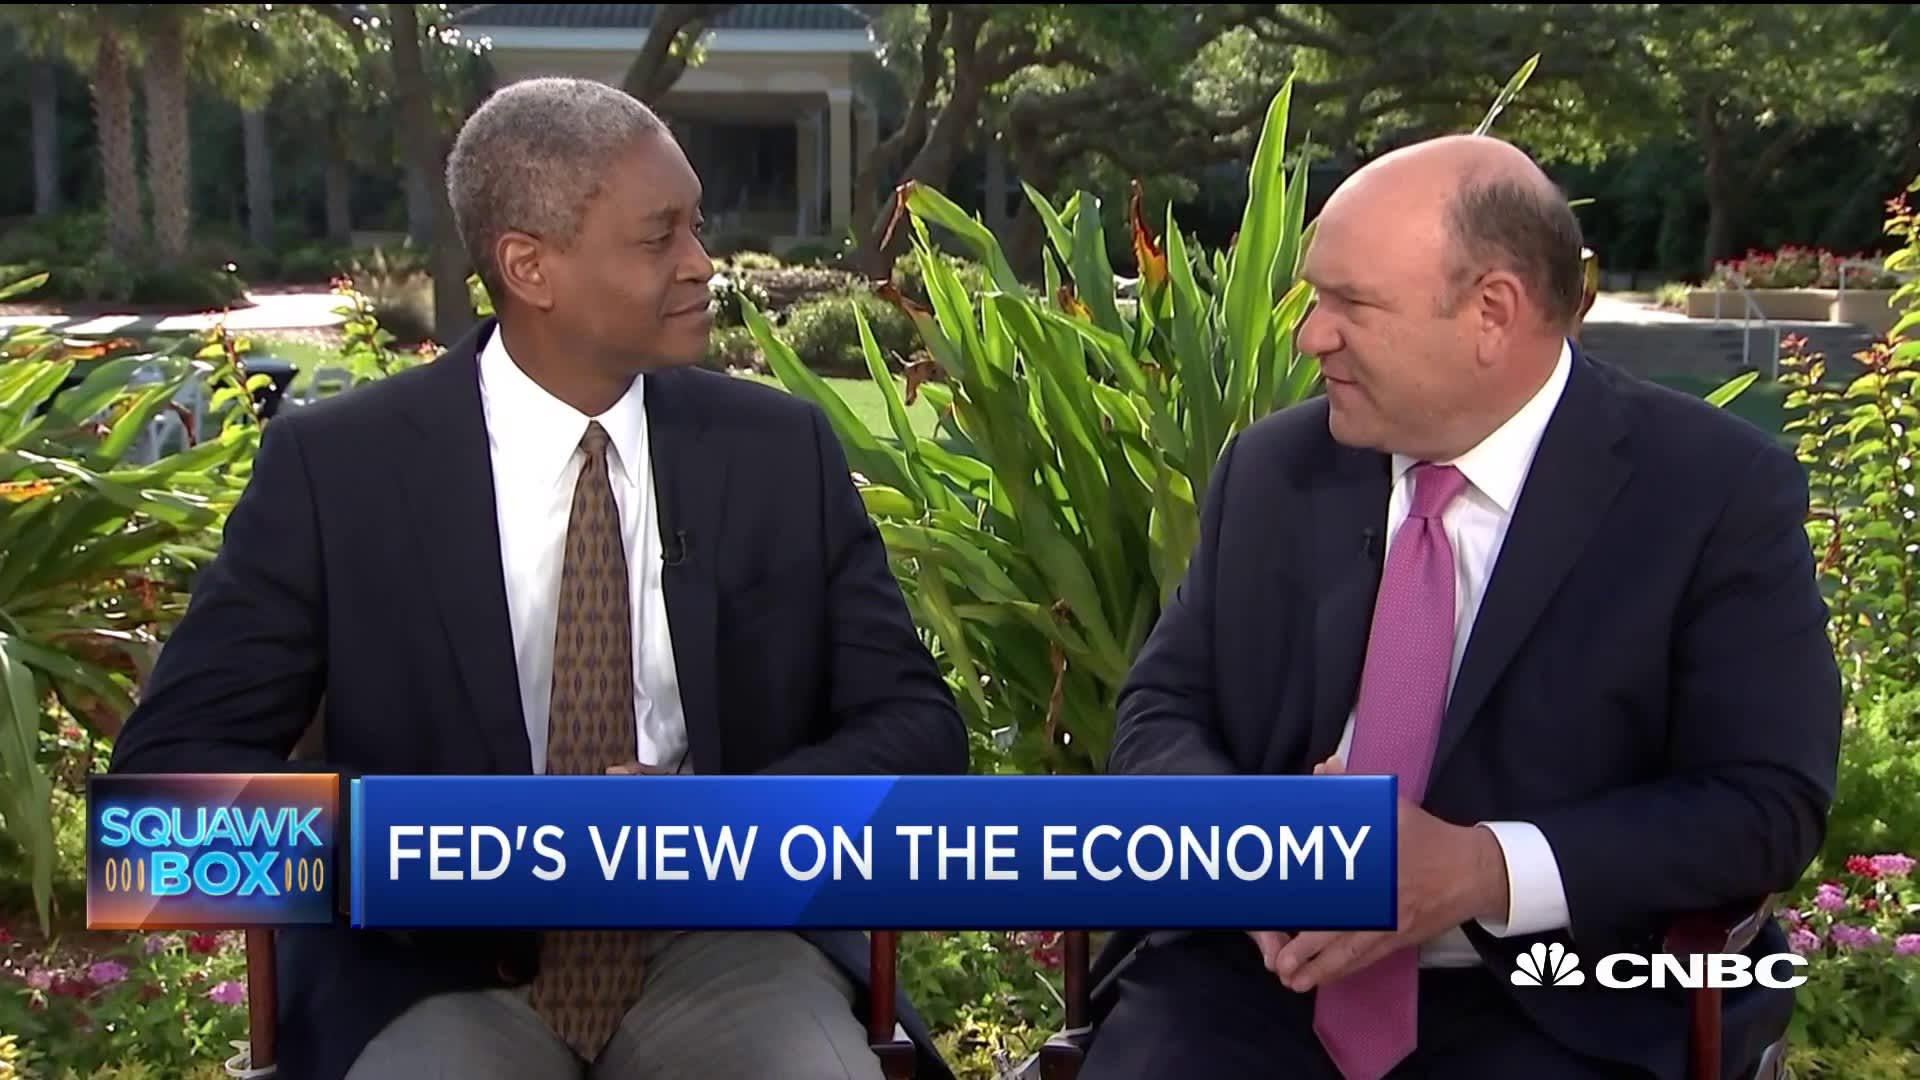 Atlanta Fed President Bostic does not see a rate cut this year like the market is telegraphing